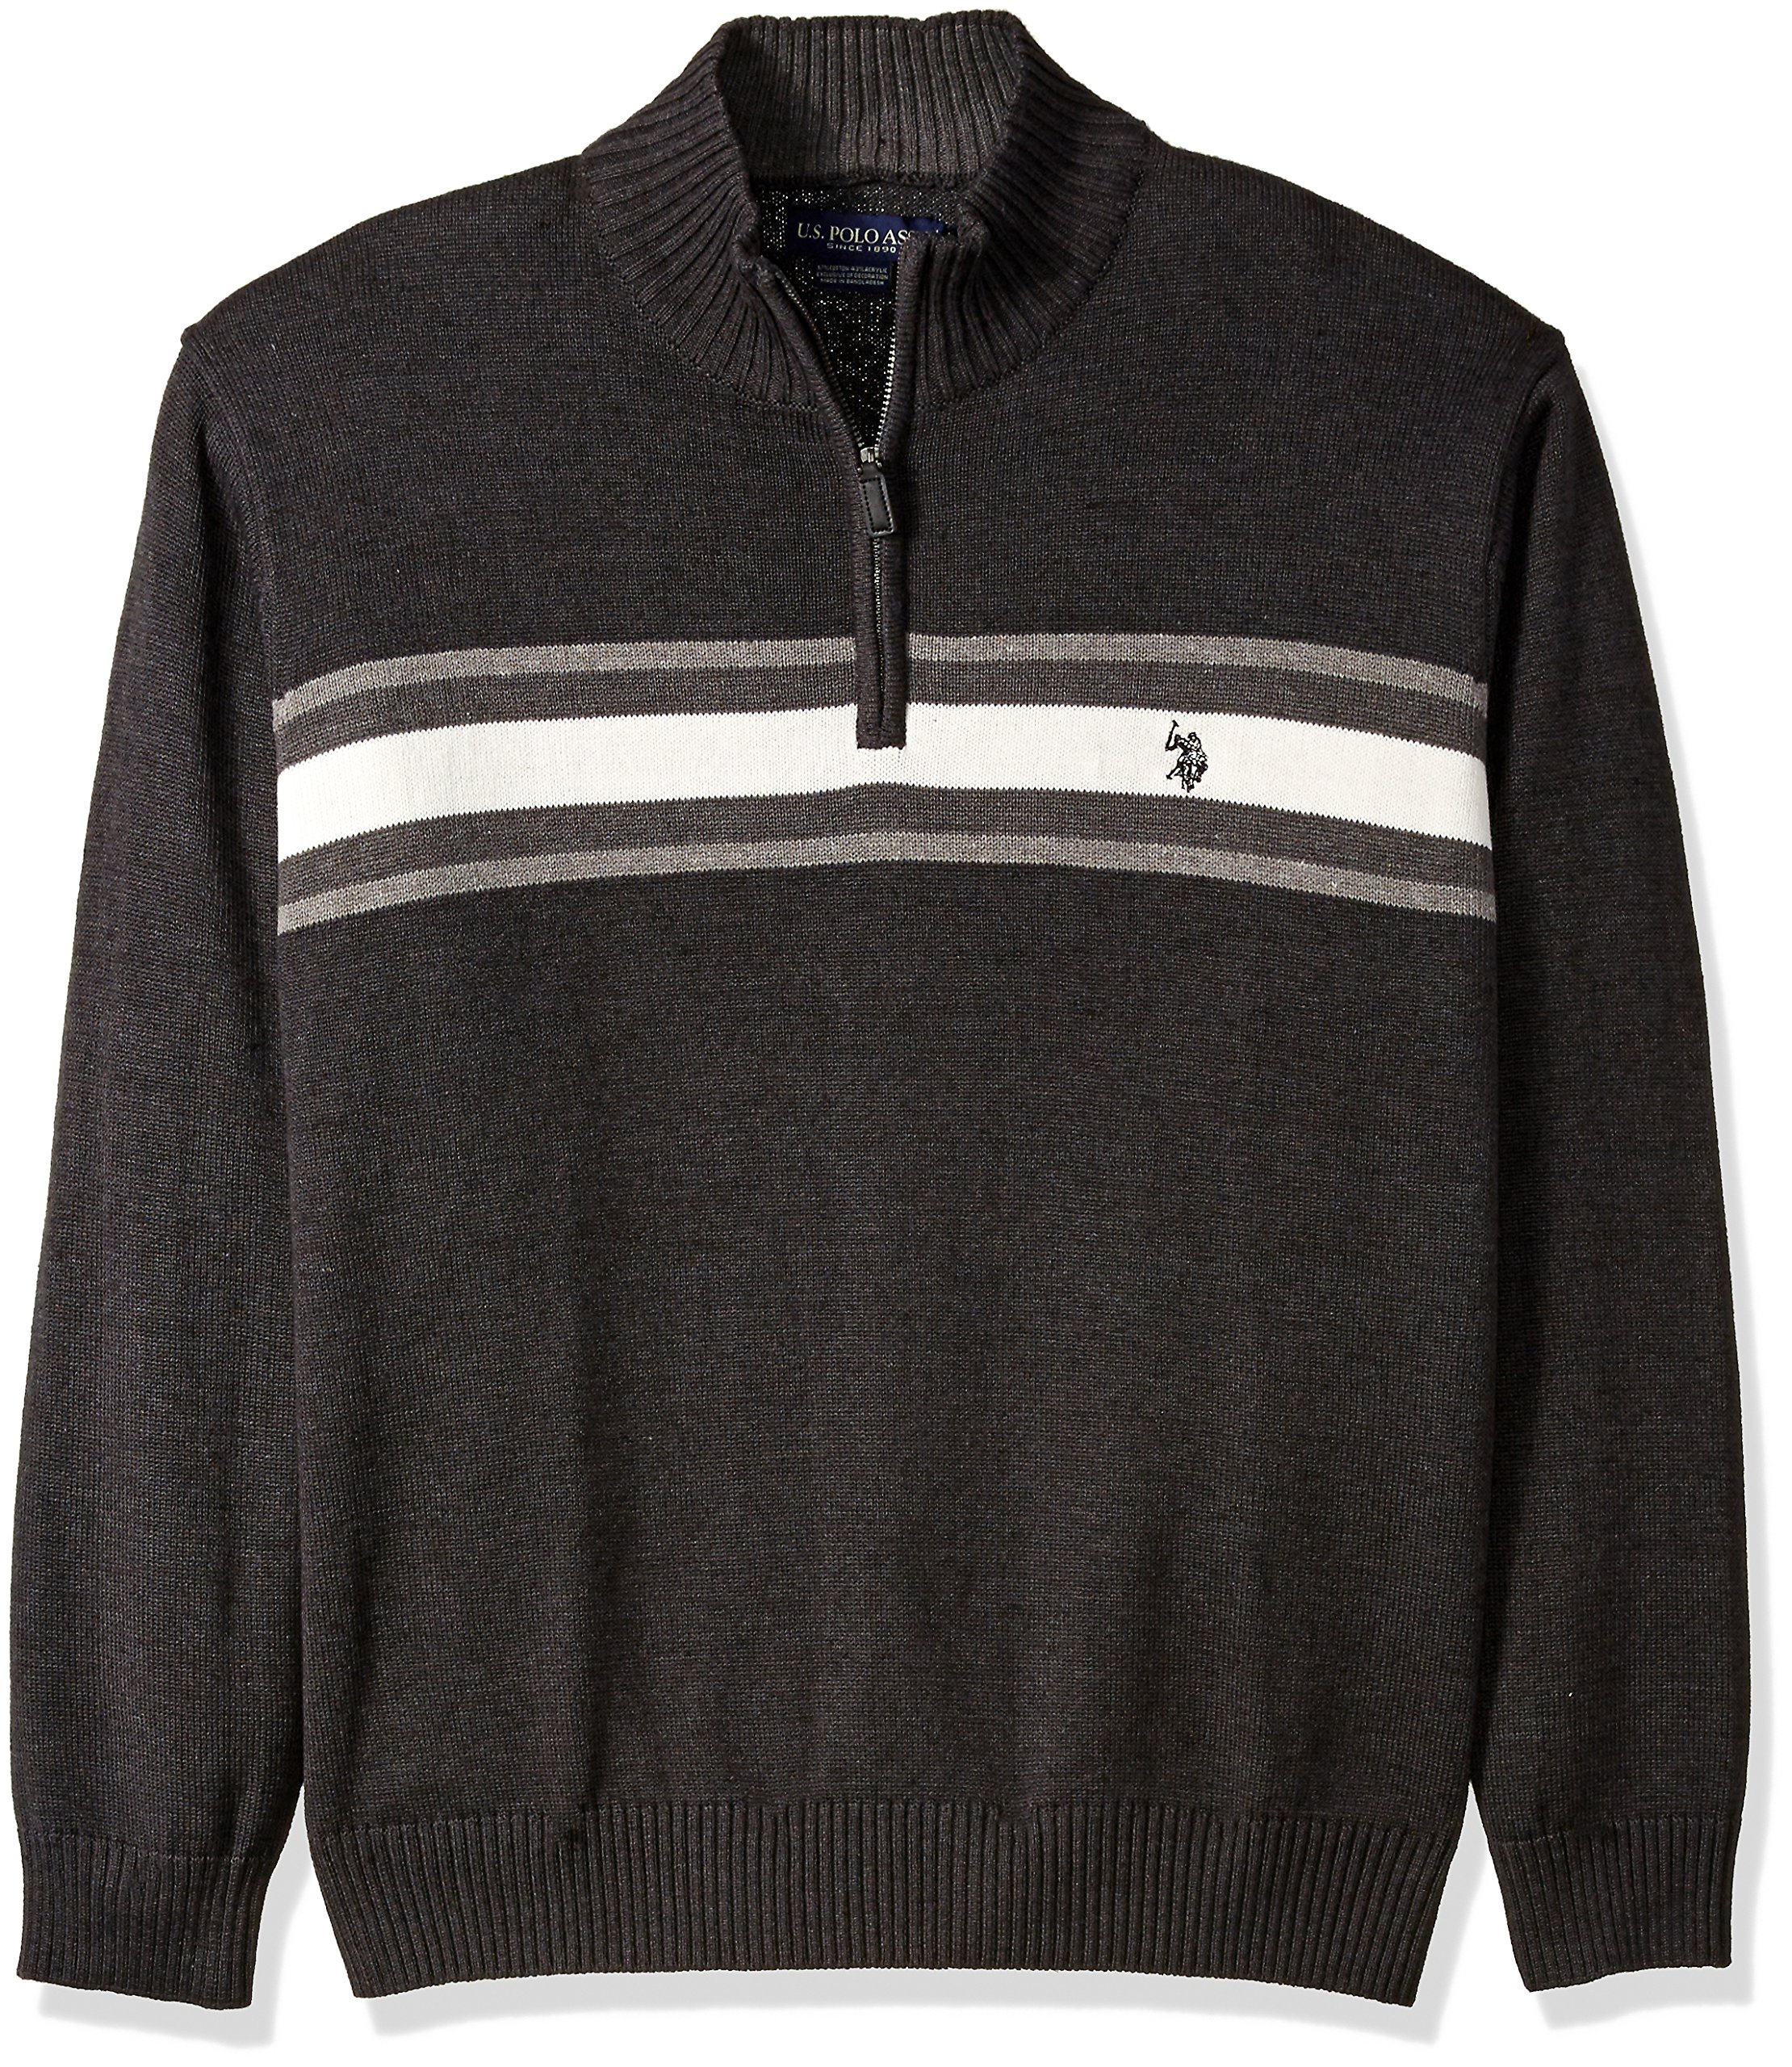 U.S. Polo Assn. Men's Tri-Color Chest Stripe 1/4 Zip Sweater, Charcoal Heather, Small